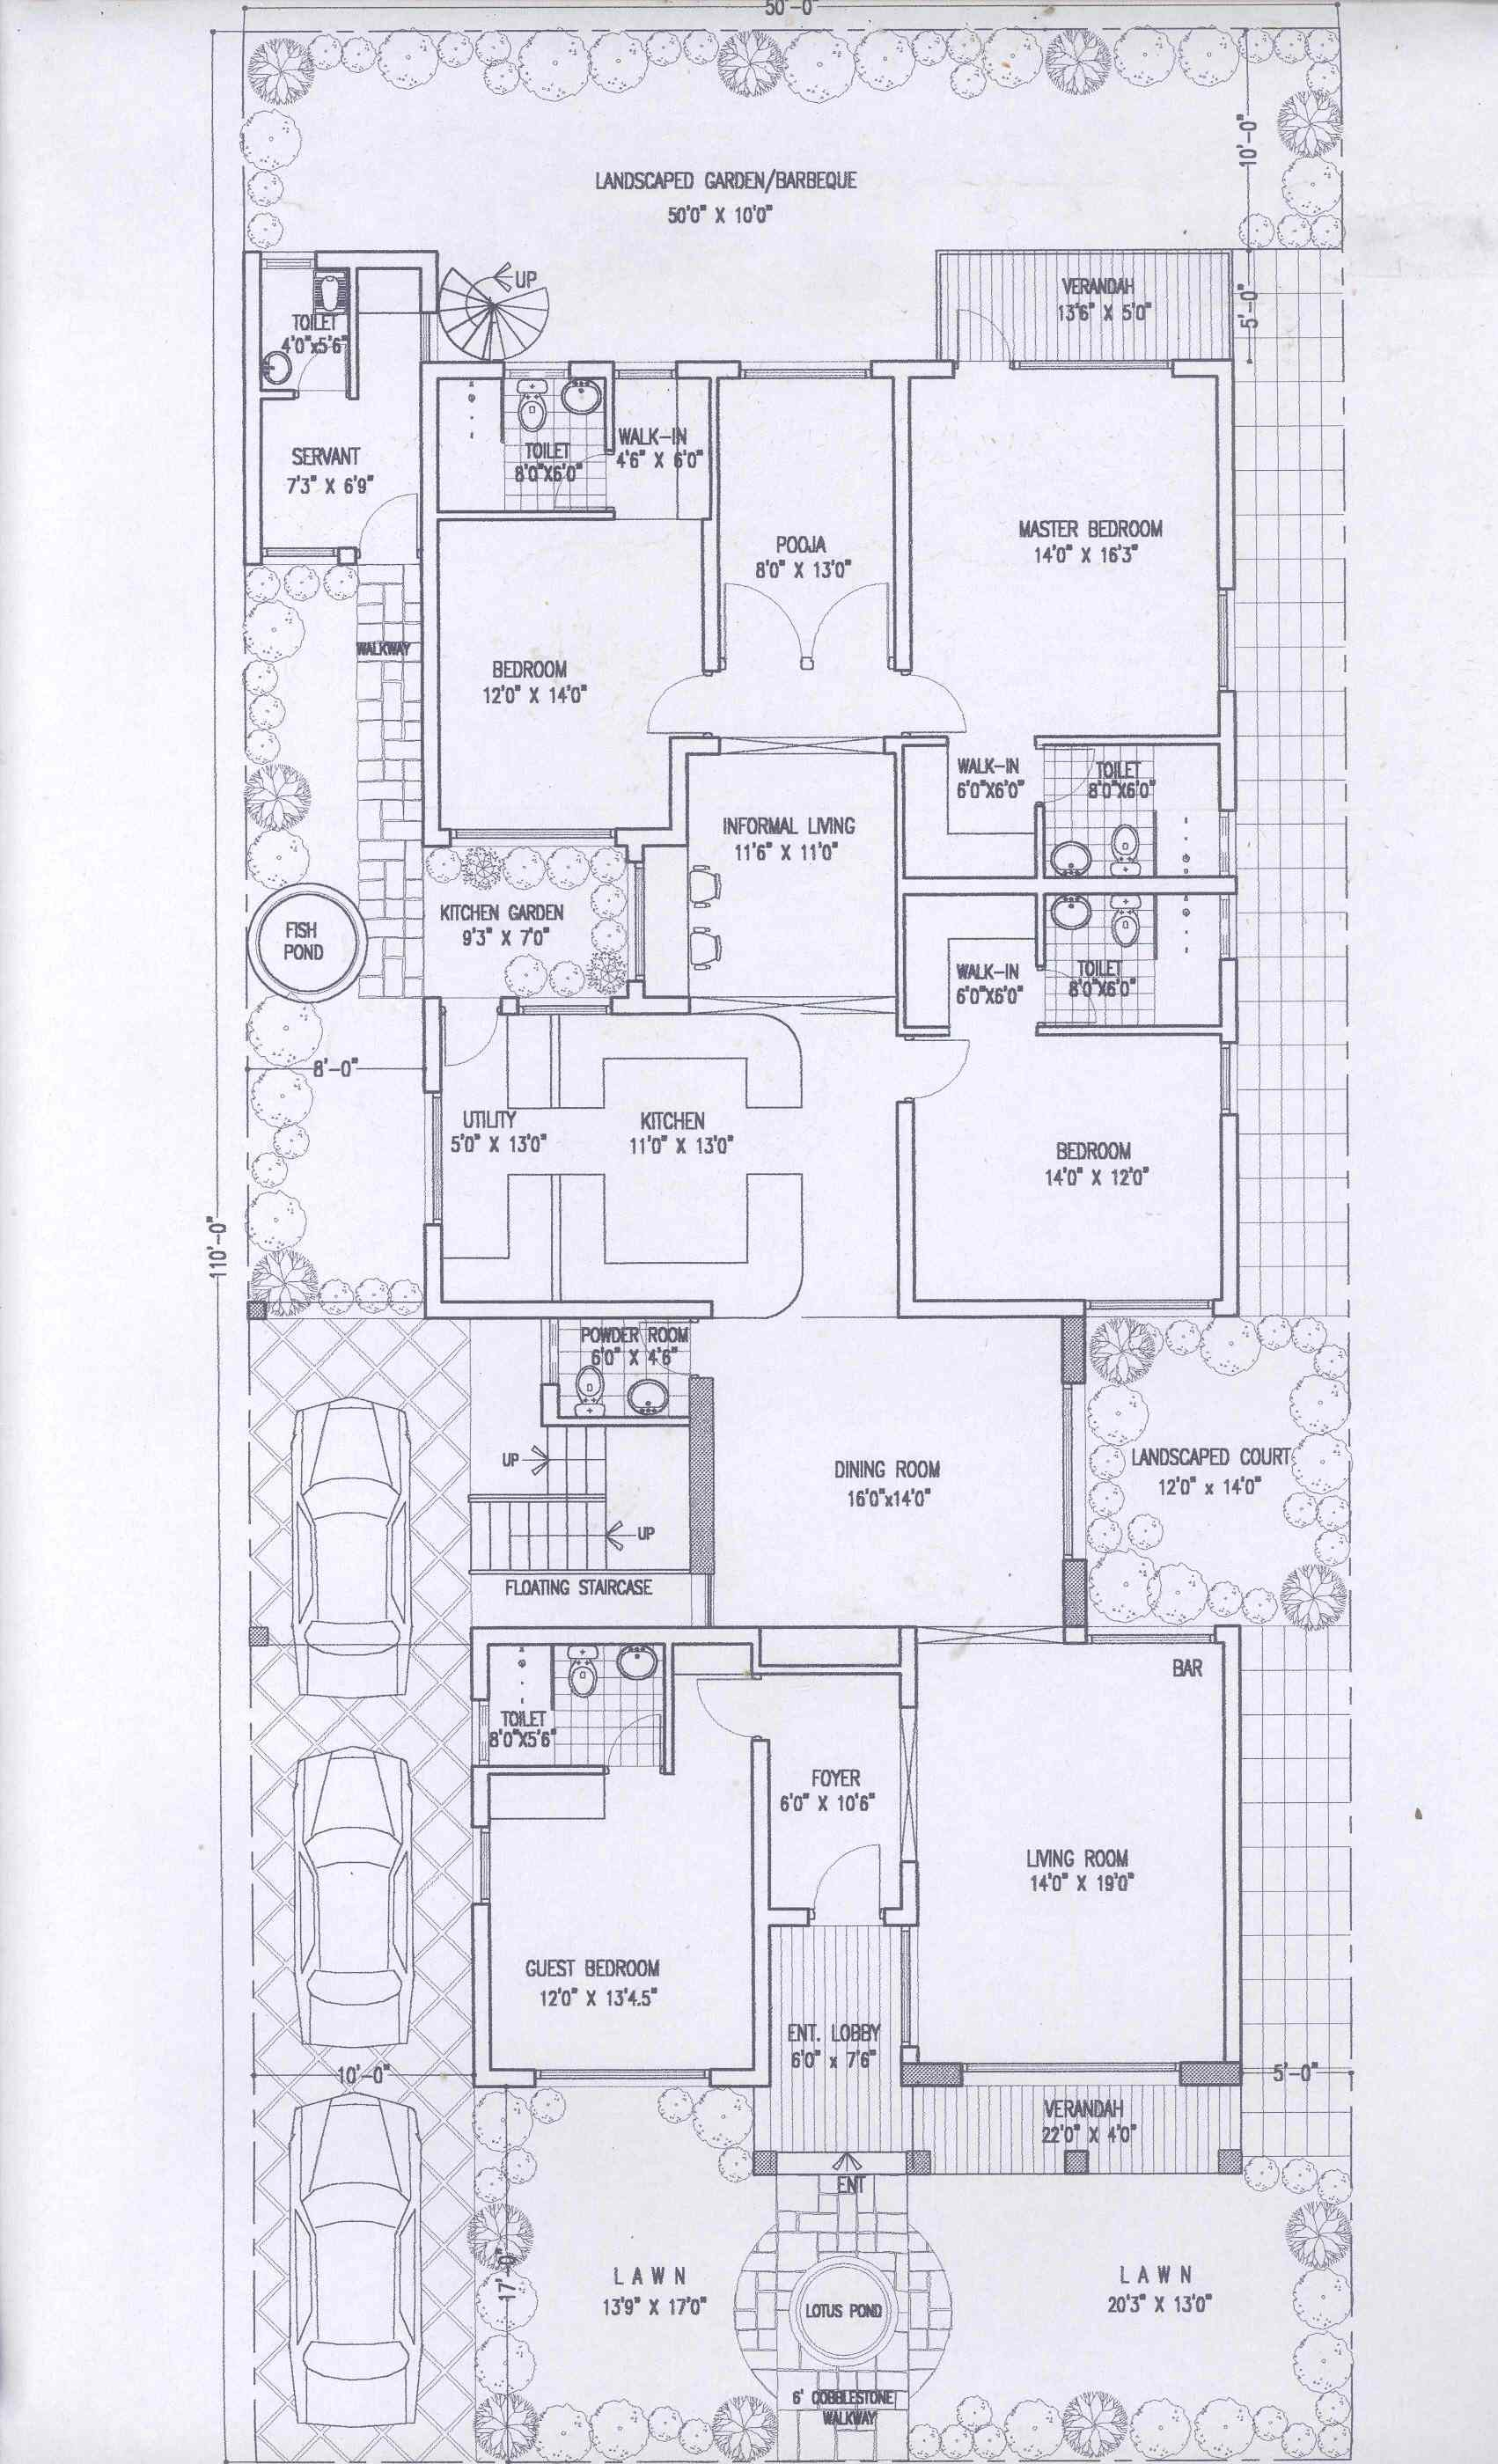 Property Square Footage Map House Measurement Foot